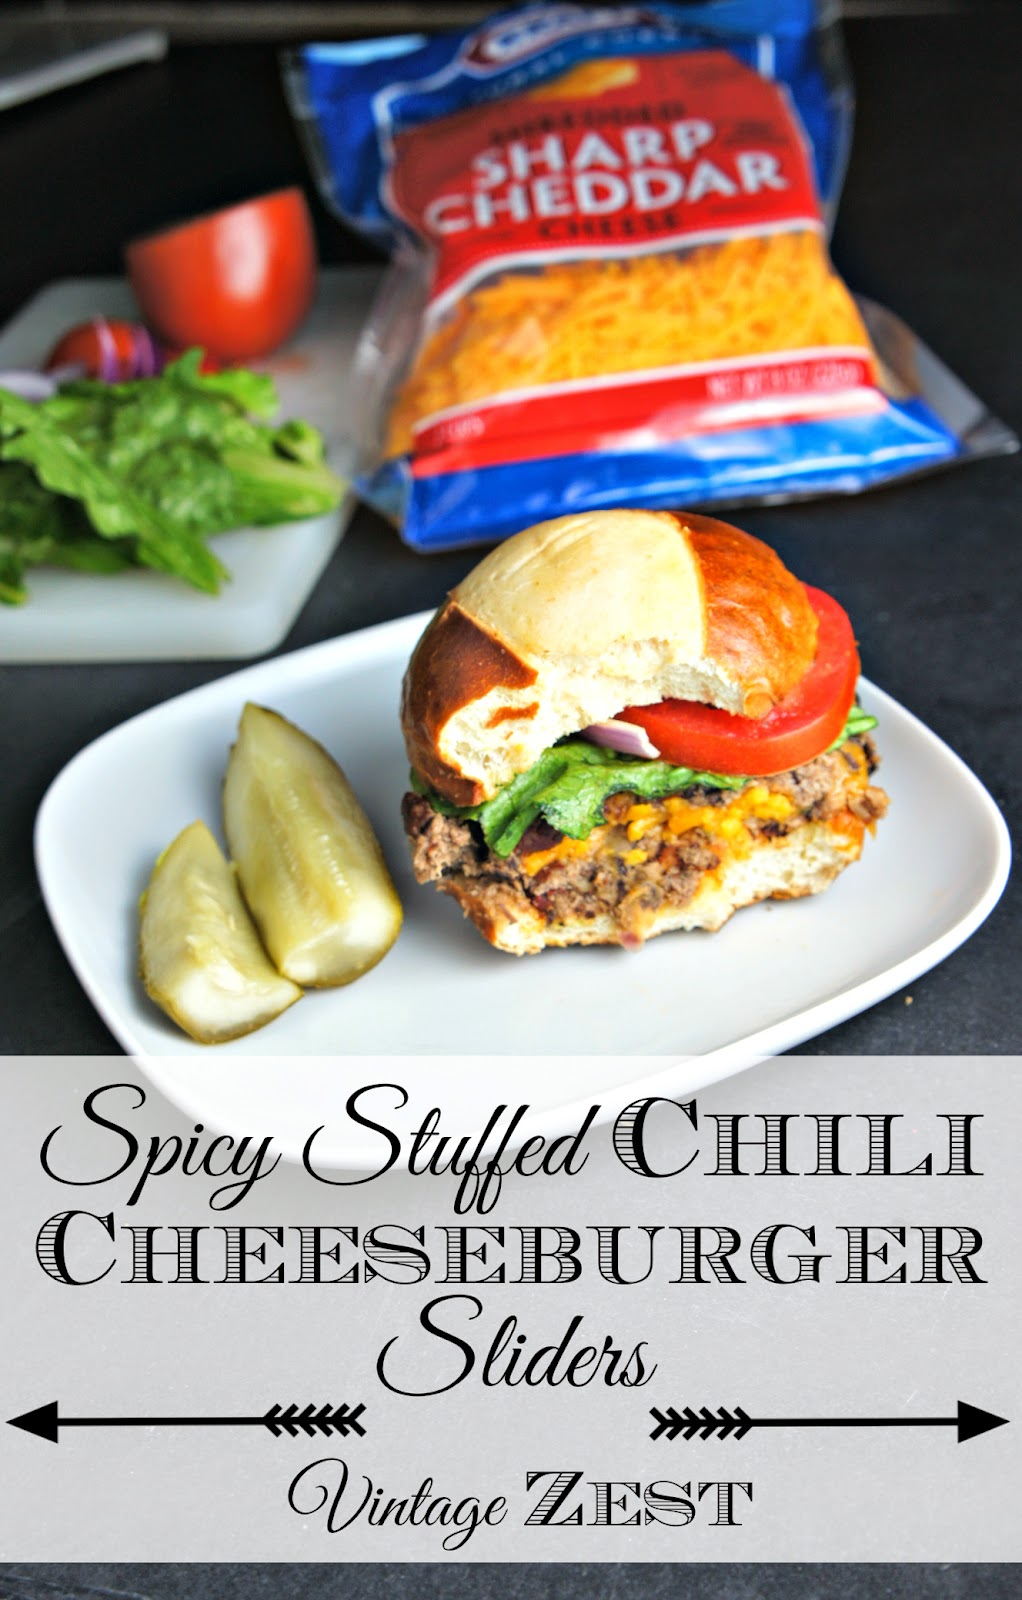 Spicy Stuffed Chili Cheeseburger Sliders #shop #SayCheeseburger #CollectiveBias #cbias